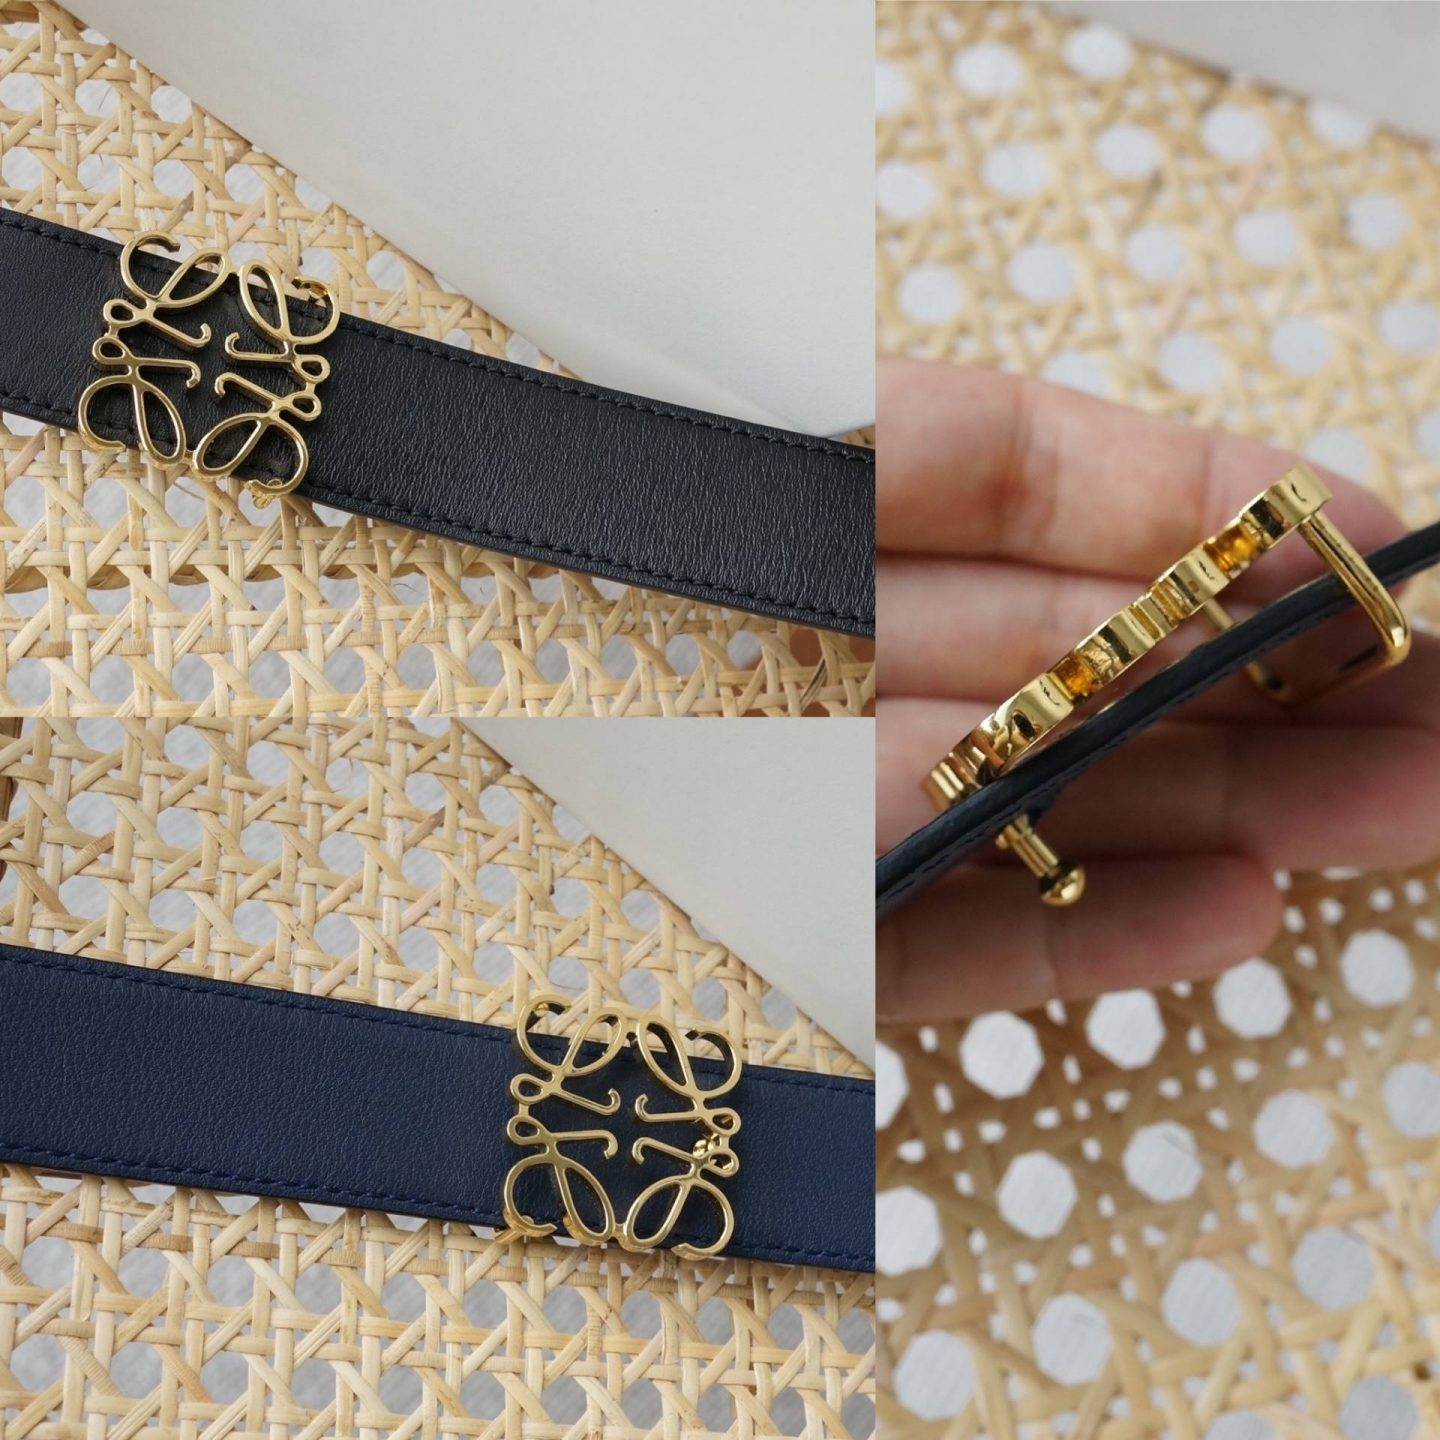 reversible loewe belt in blog post sharing review and belt comparison